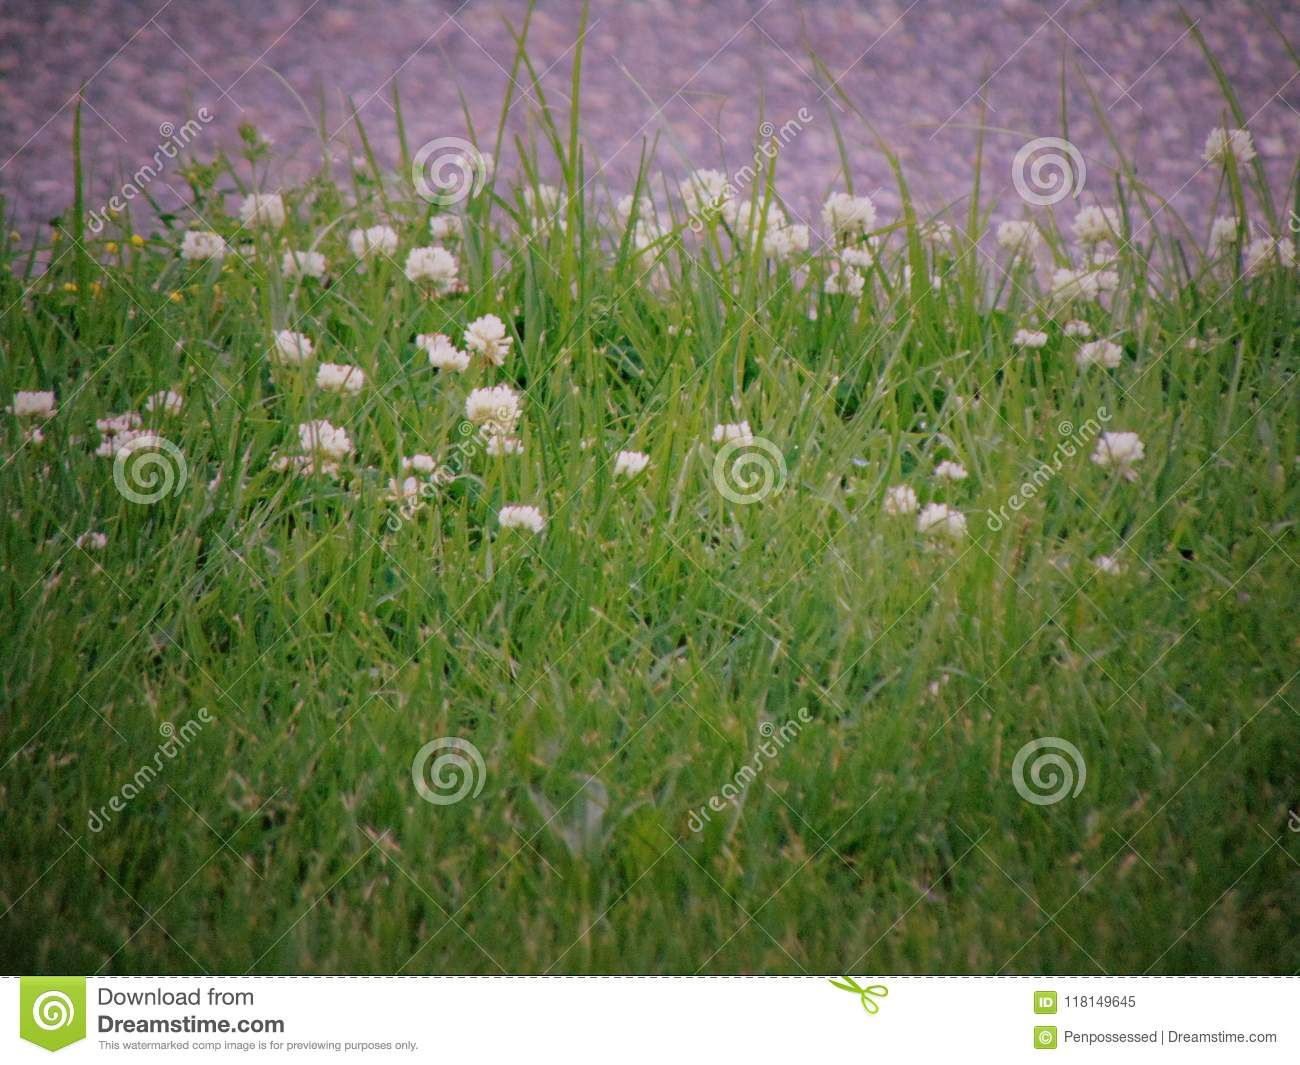 Small white flowering weeds growing in tall grass stock image download comp mightylinksfo